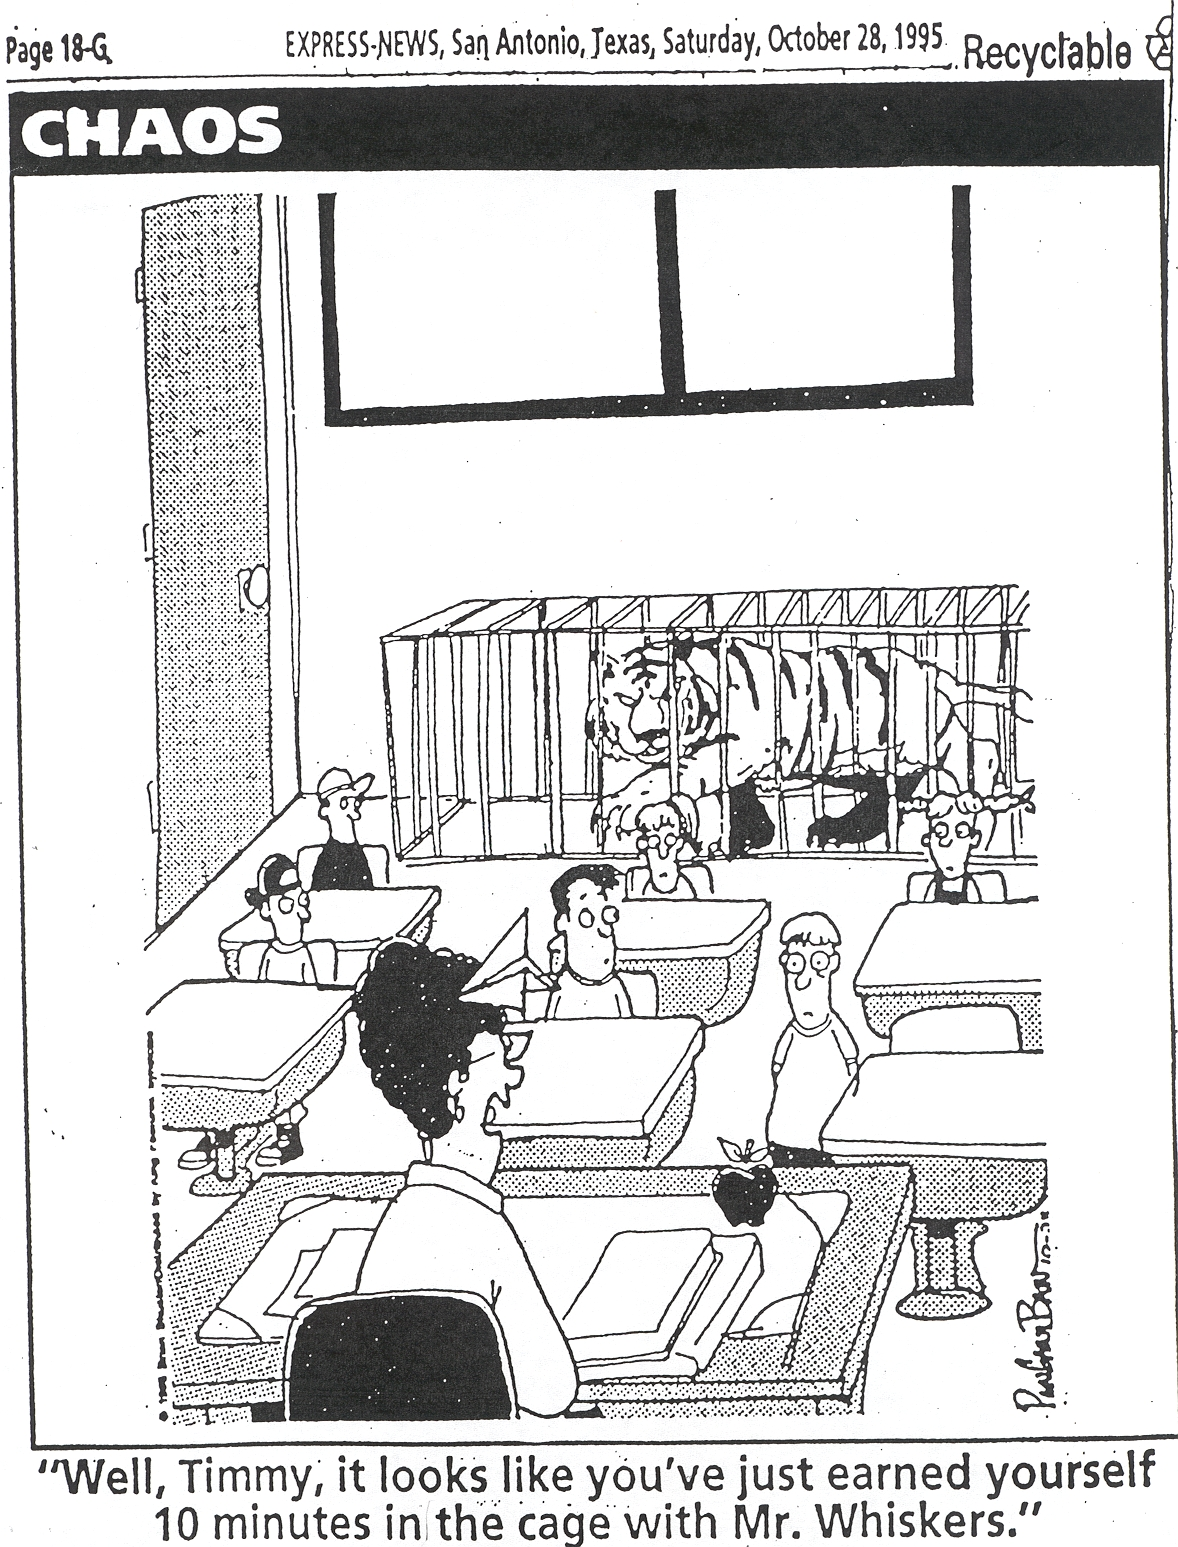 essay on school rules harvard business school essay harvard  classroom management system click here for a cartoon about consequences high school essay